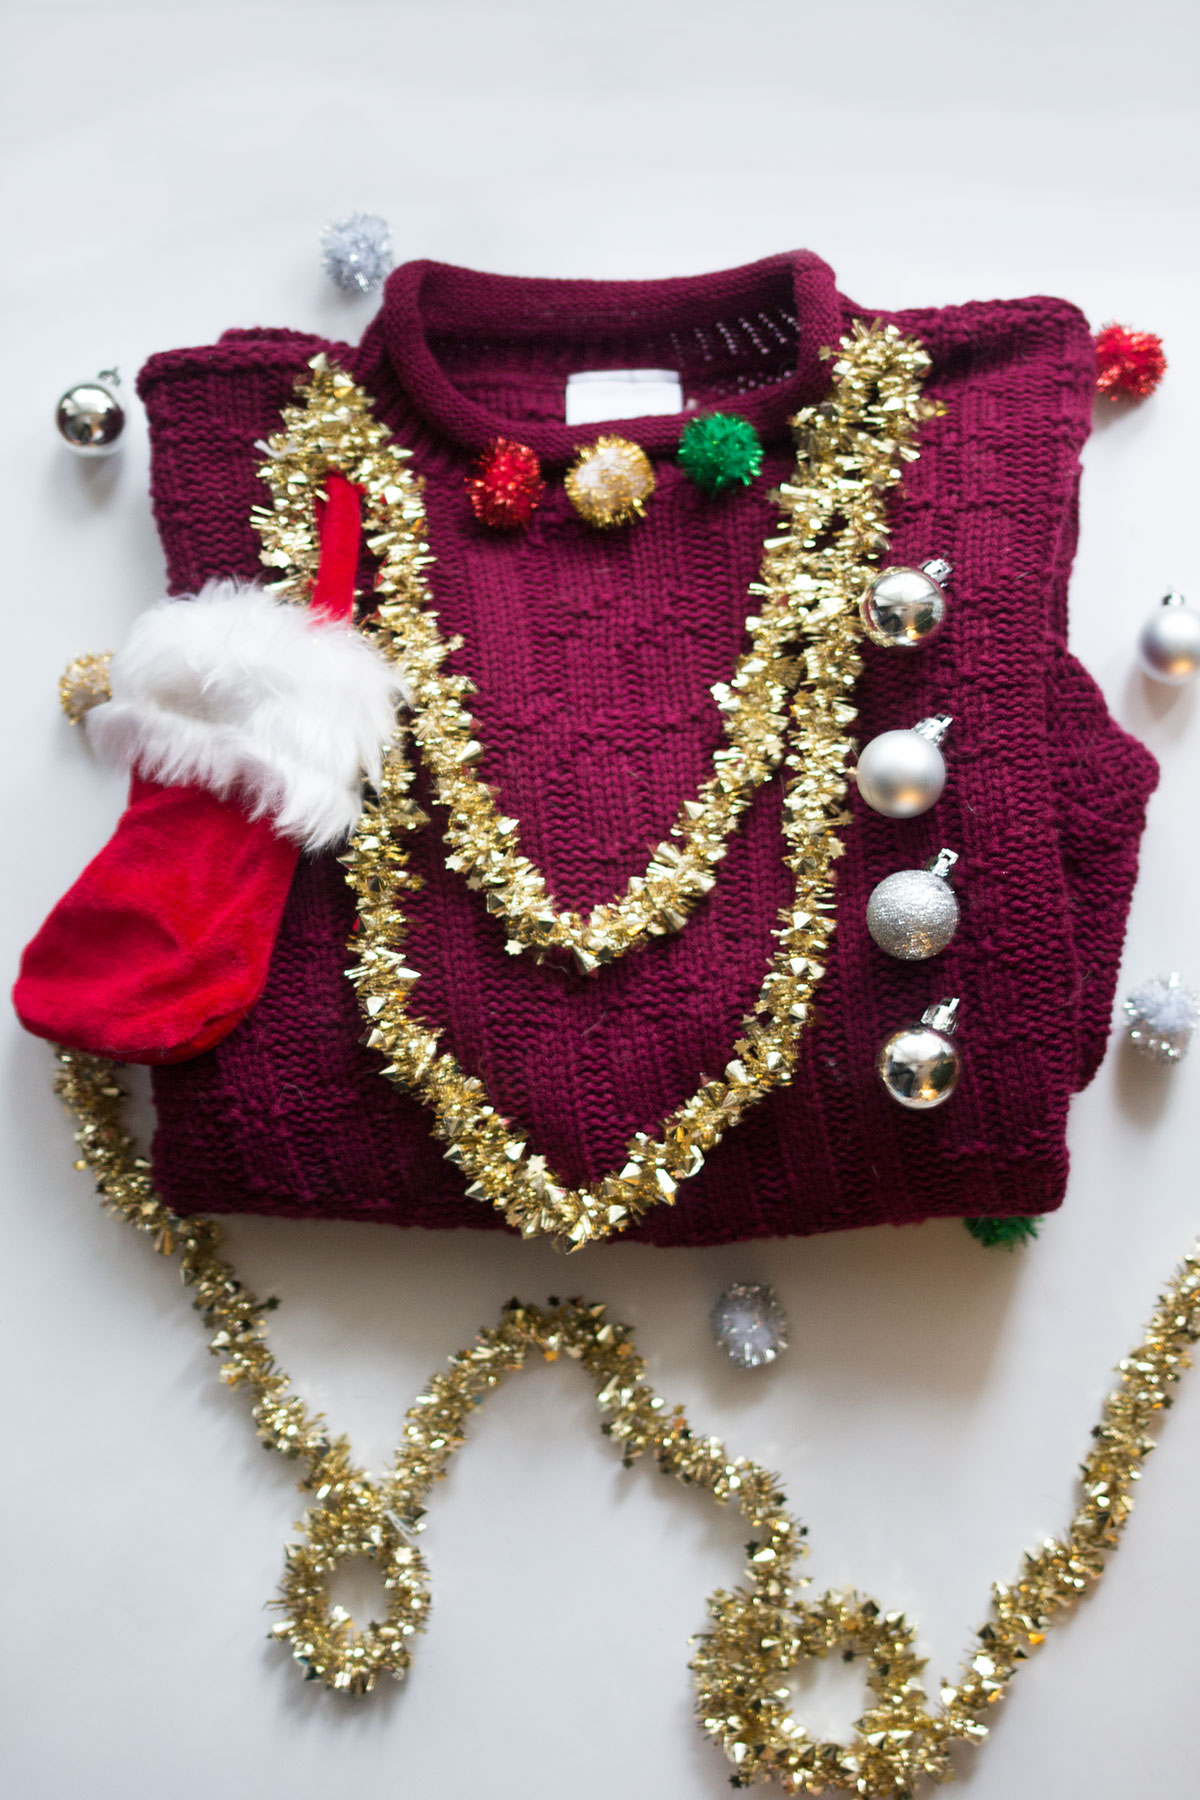 DIY Ugly Christmas Sweater for National Ugly Sweater Day // hellorigby.com seattle fashion blog